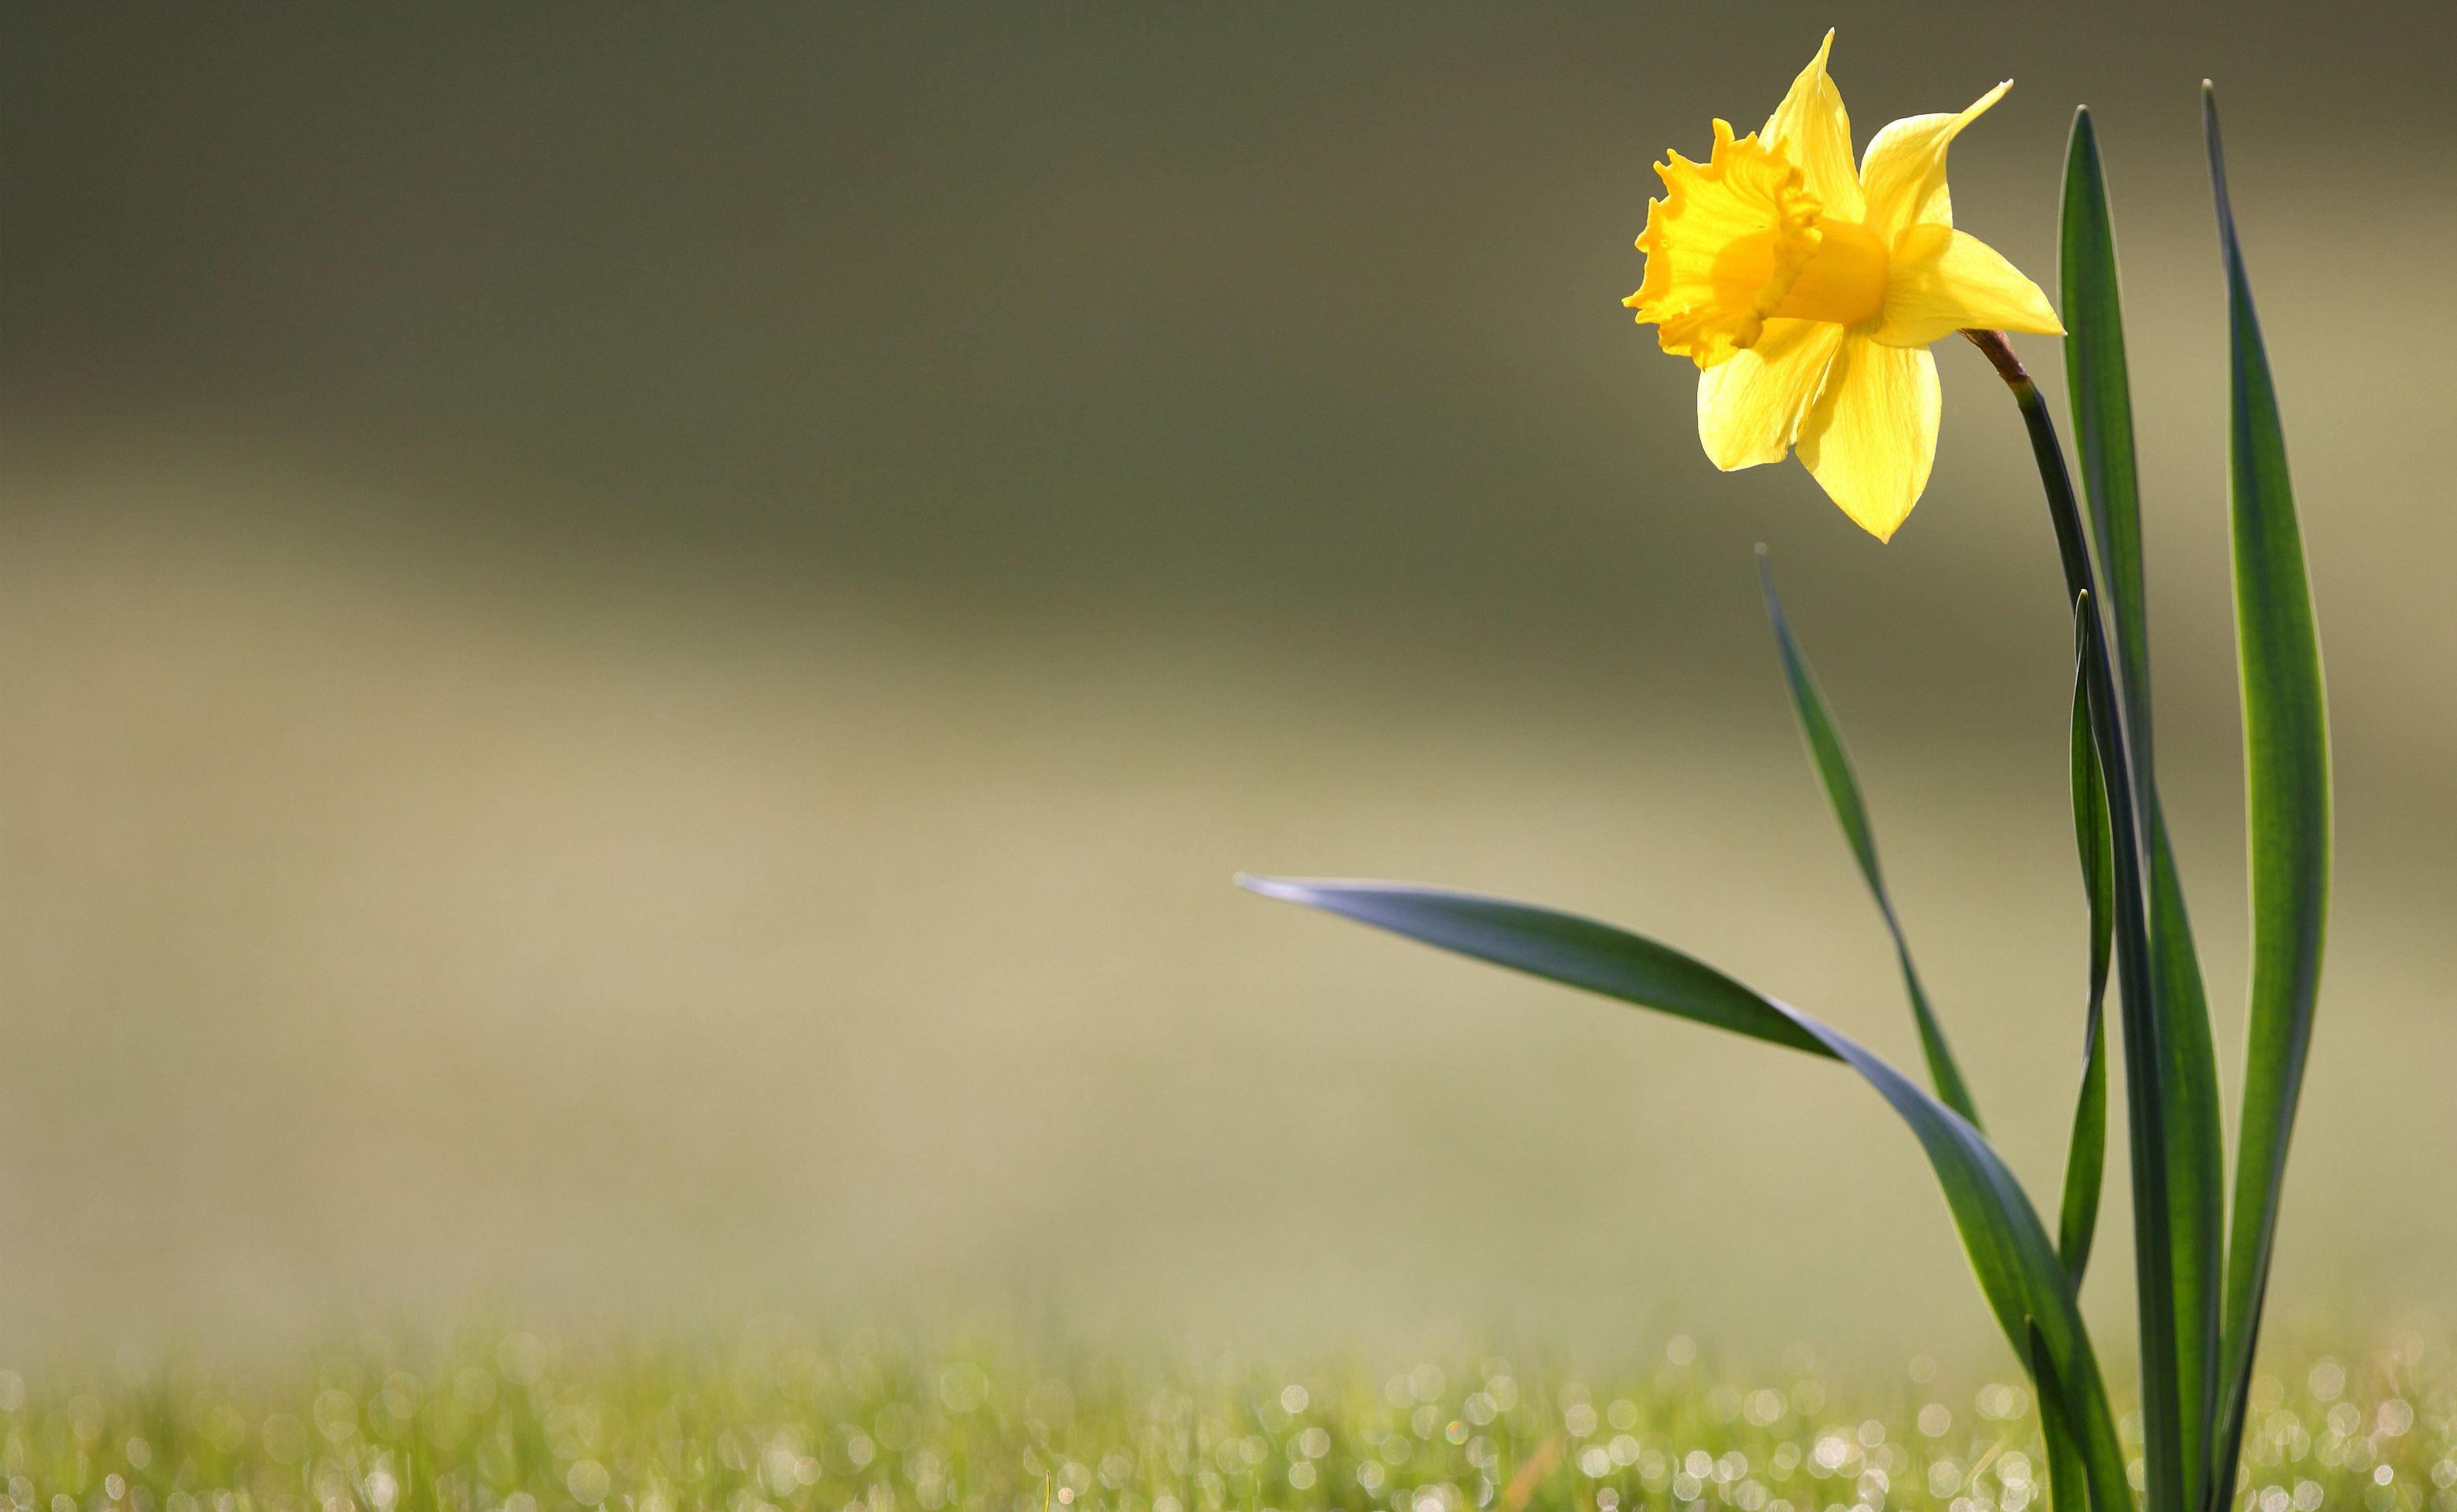 Hd Daffodil Wallpapers Download Free 783383 Daffodils Daffodil Images Daffodil Flower